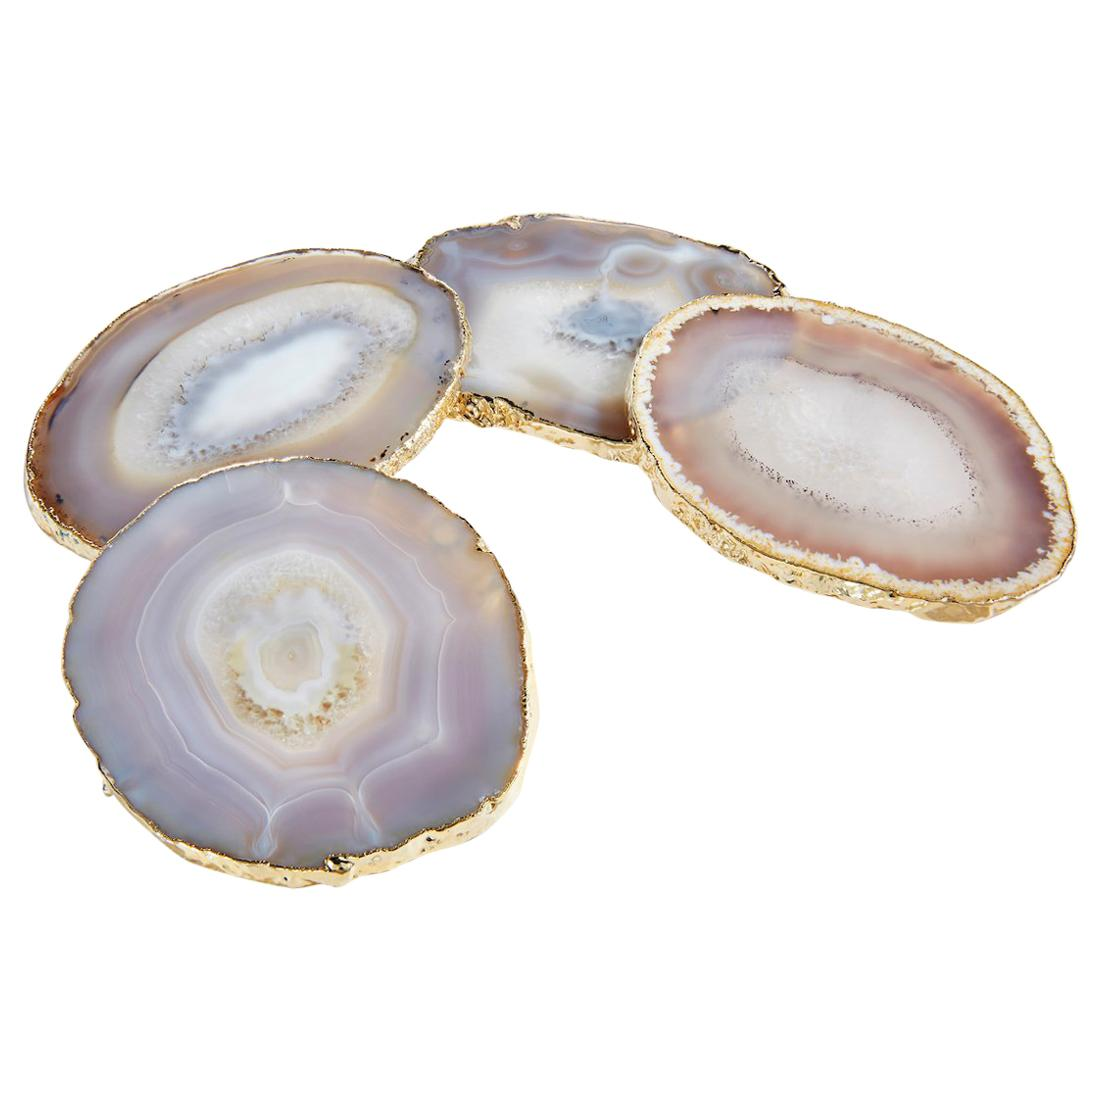 Lumino Coasters in Smoke Agate and 24k Gold by ANNA New York